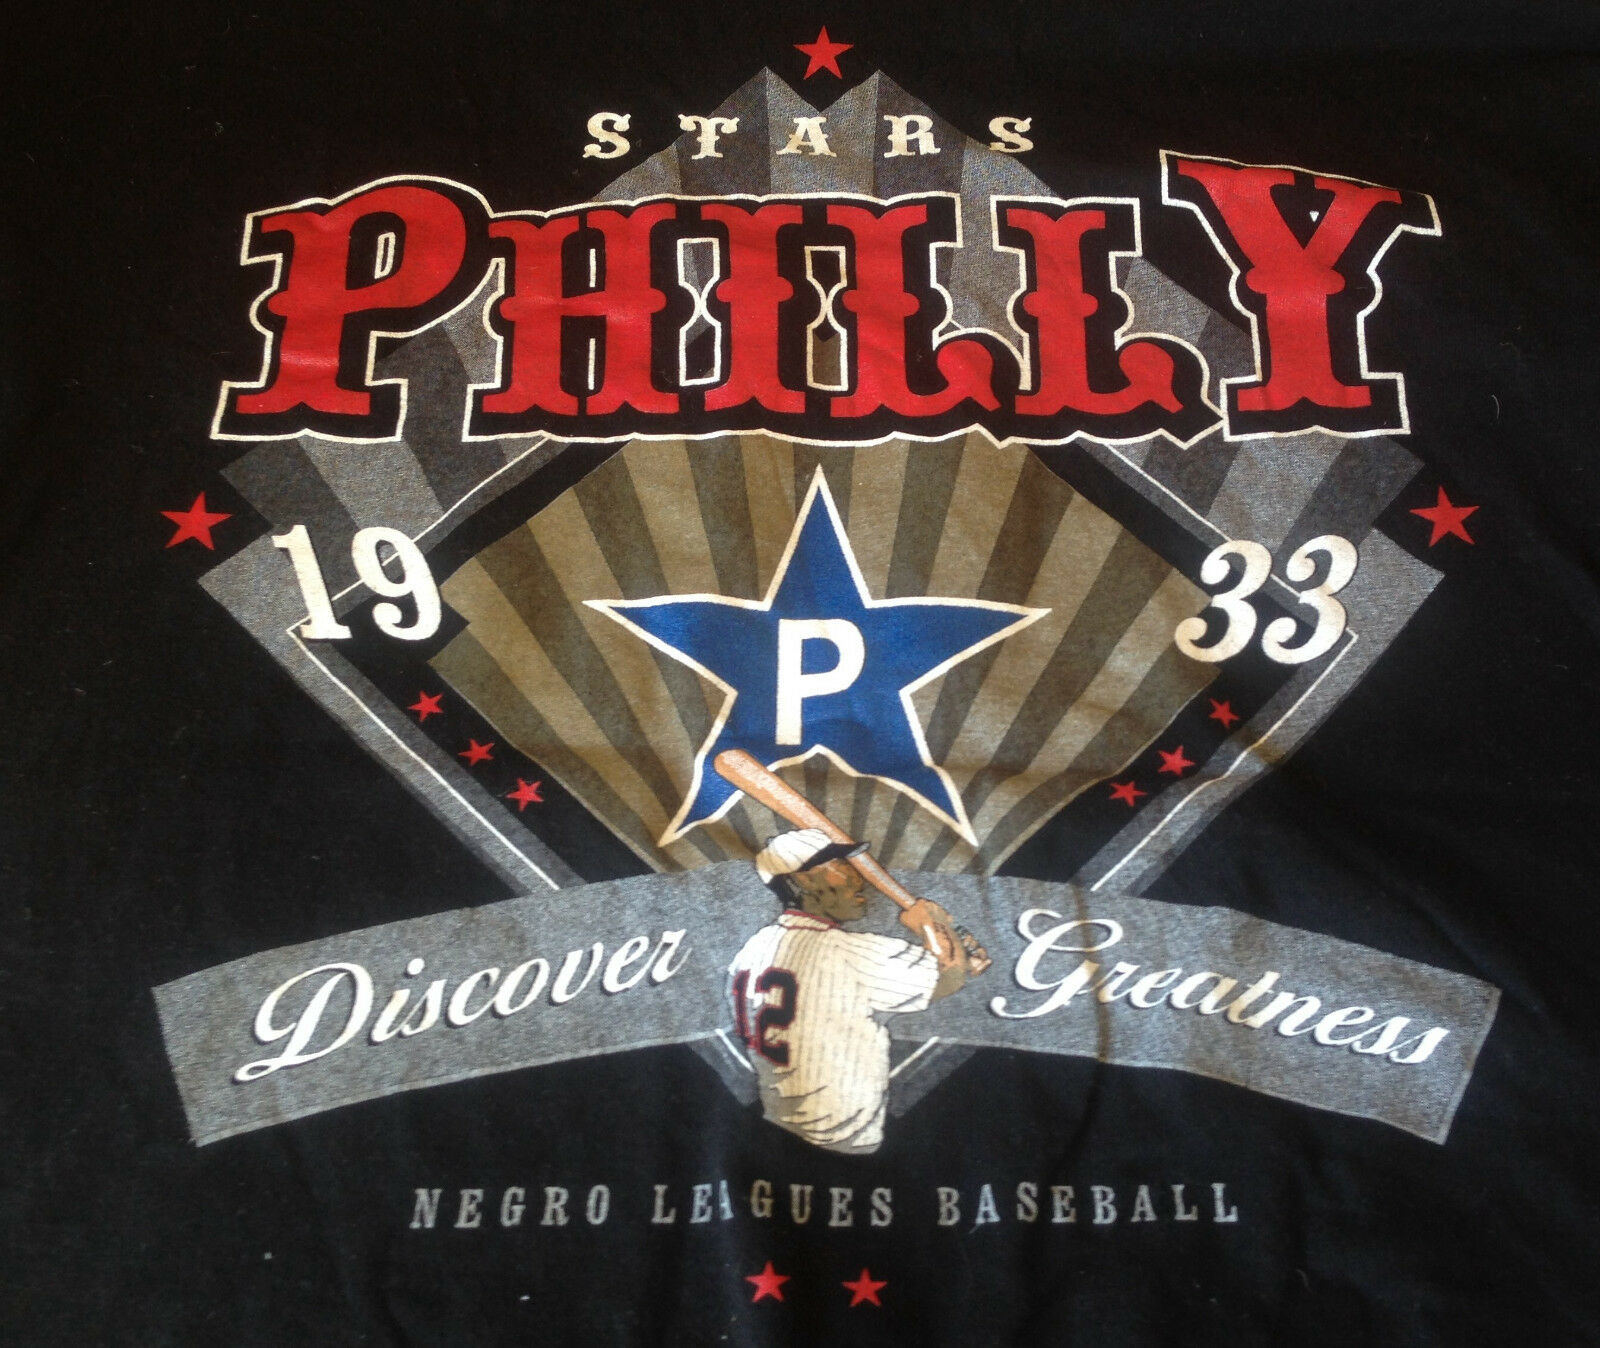 Big Boy NLBM black League Classic T-Shirt Philly 1933 Baseball Discover Great XL